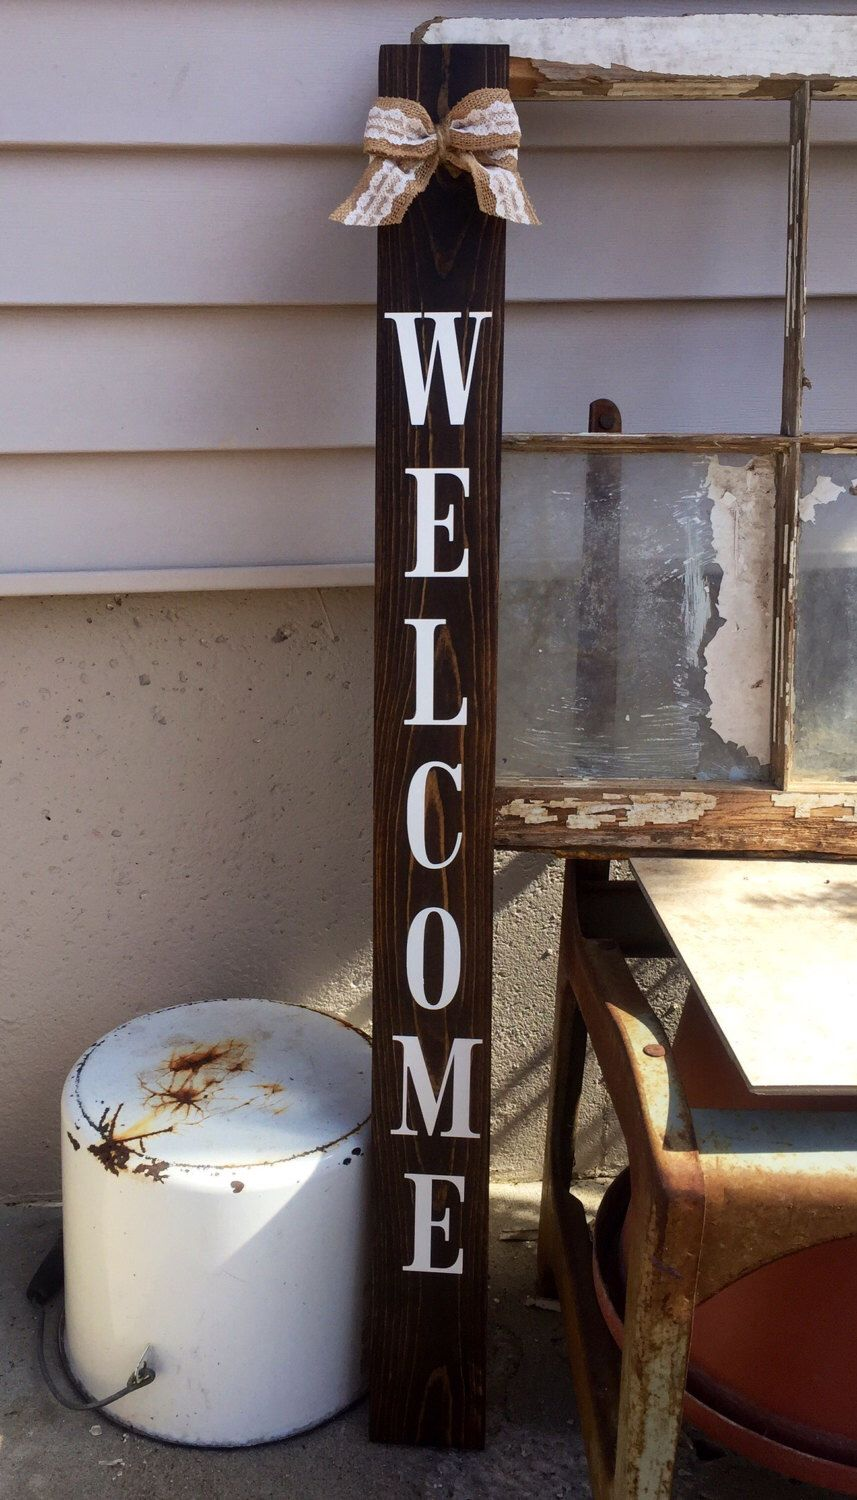 Welcome Sign Leaning Porch Sign Rustic Home Decor Painted Wooden Sign Stained Welcome Sign Small Welcome Sign Rustic Porch Sign Front Porch Signs Painted Wooden Signs Porch Signs